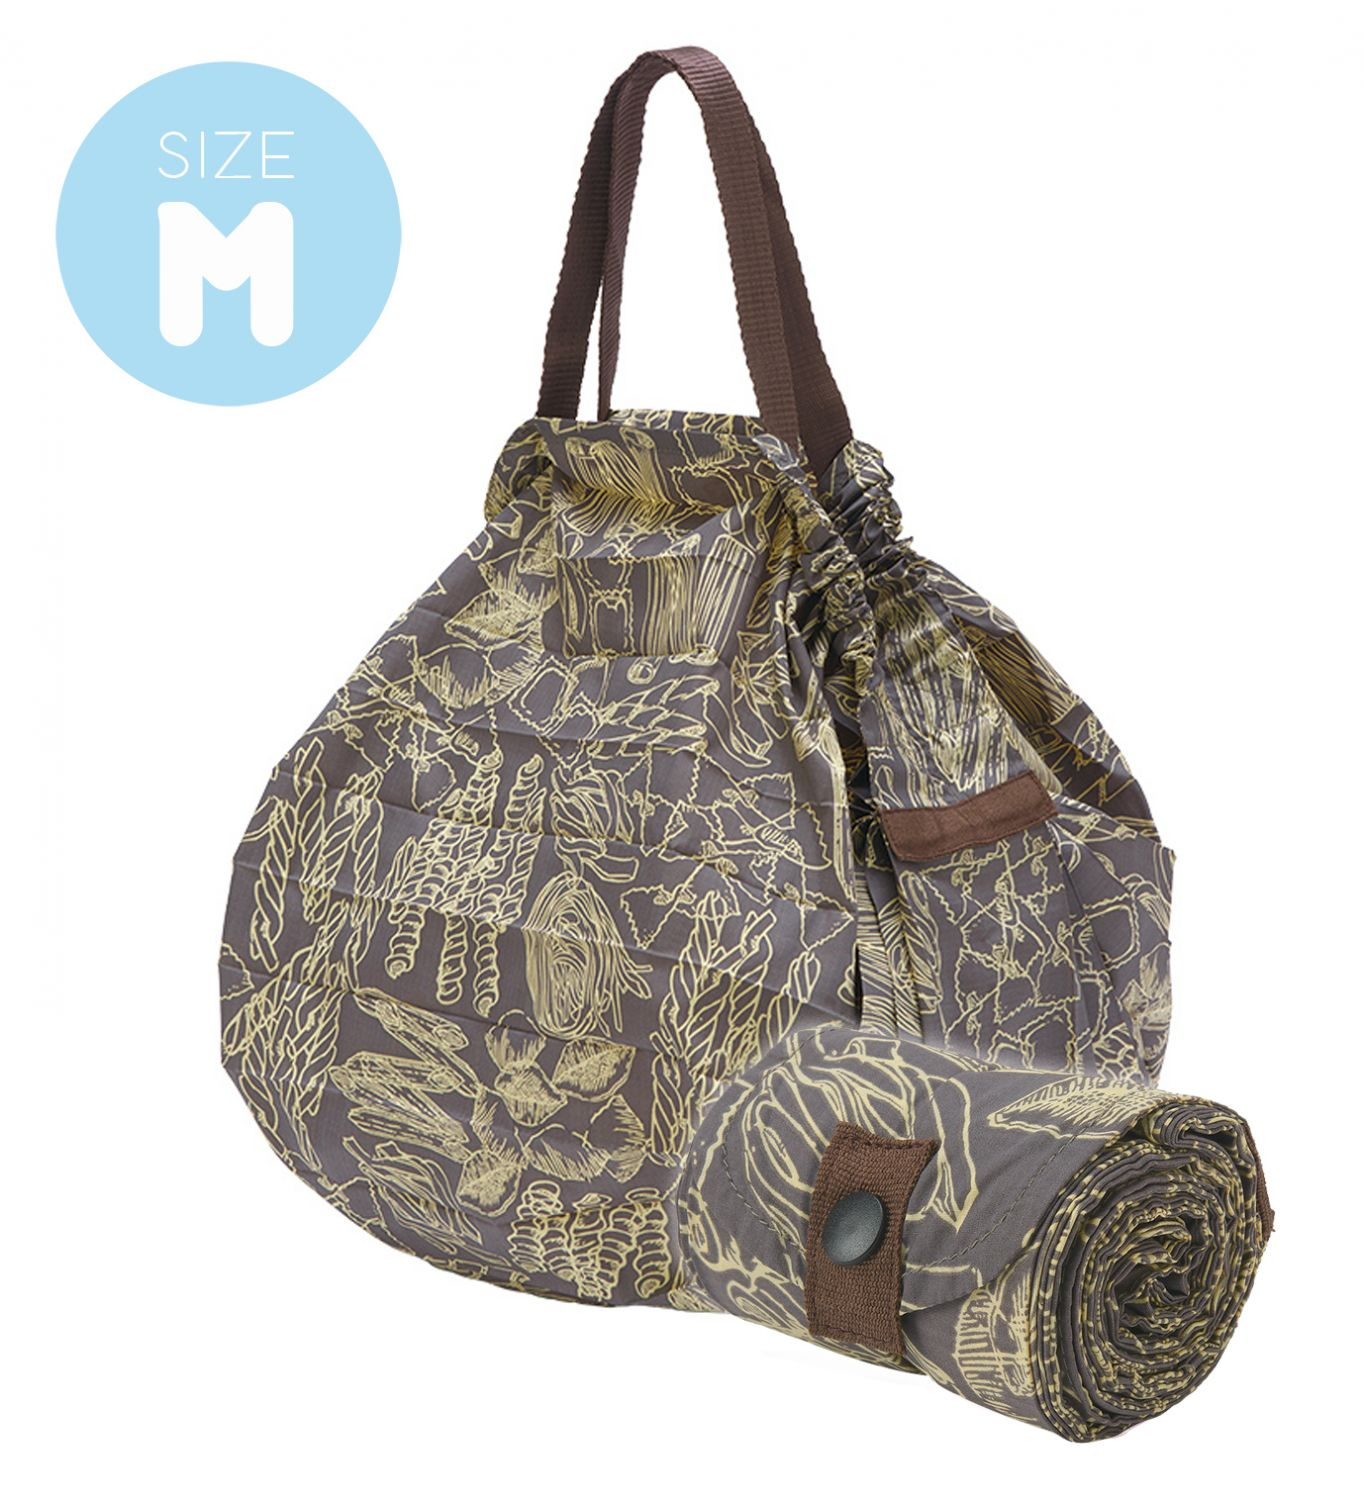 Shupatto Compact Bag - Tote Medium - Macaroni